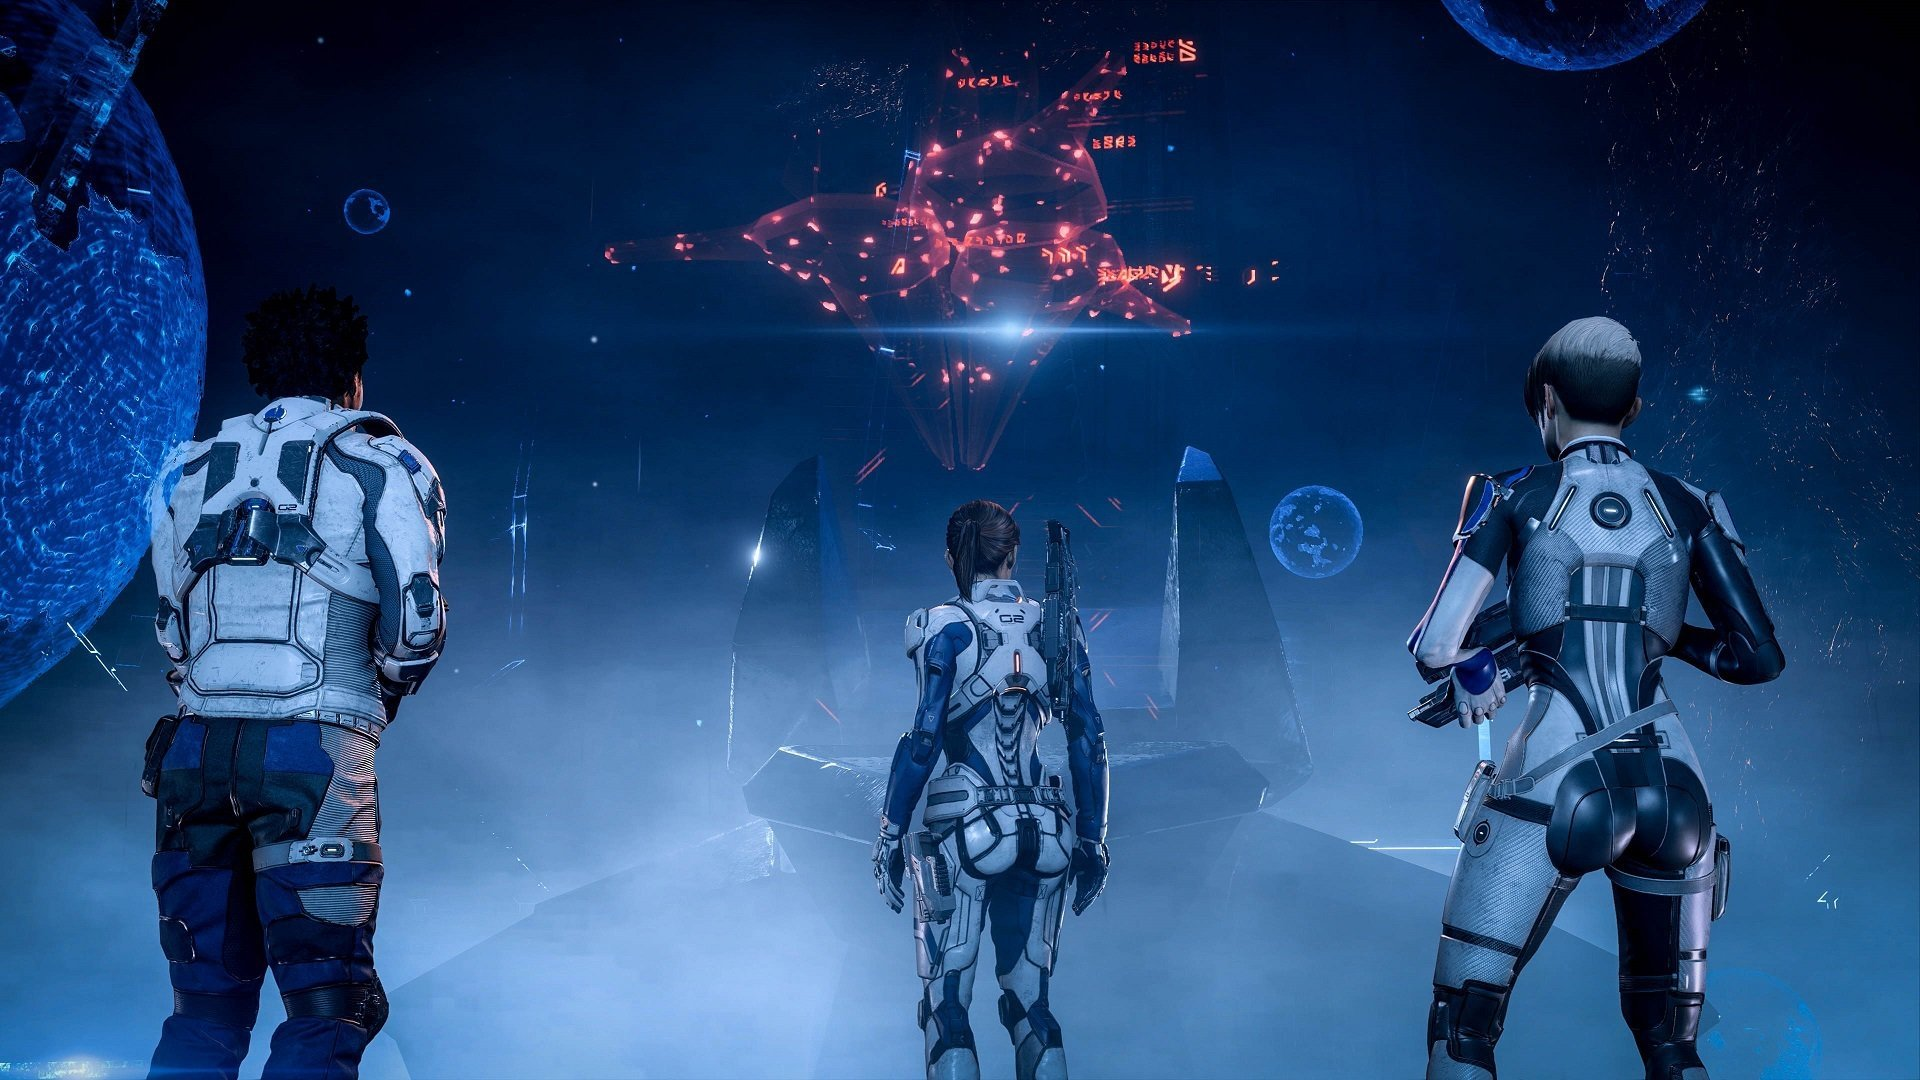 Mass Effect Andromeda Wallpaper: Save Mass Effect Andromeda HD Wallpapers